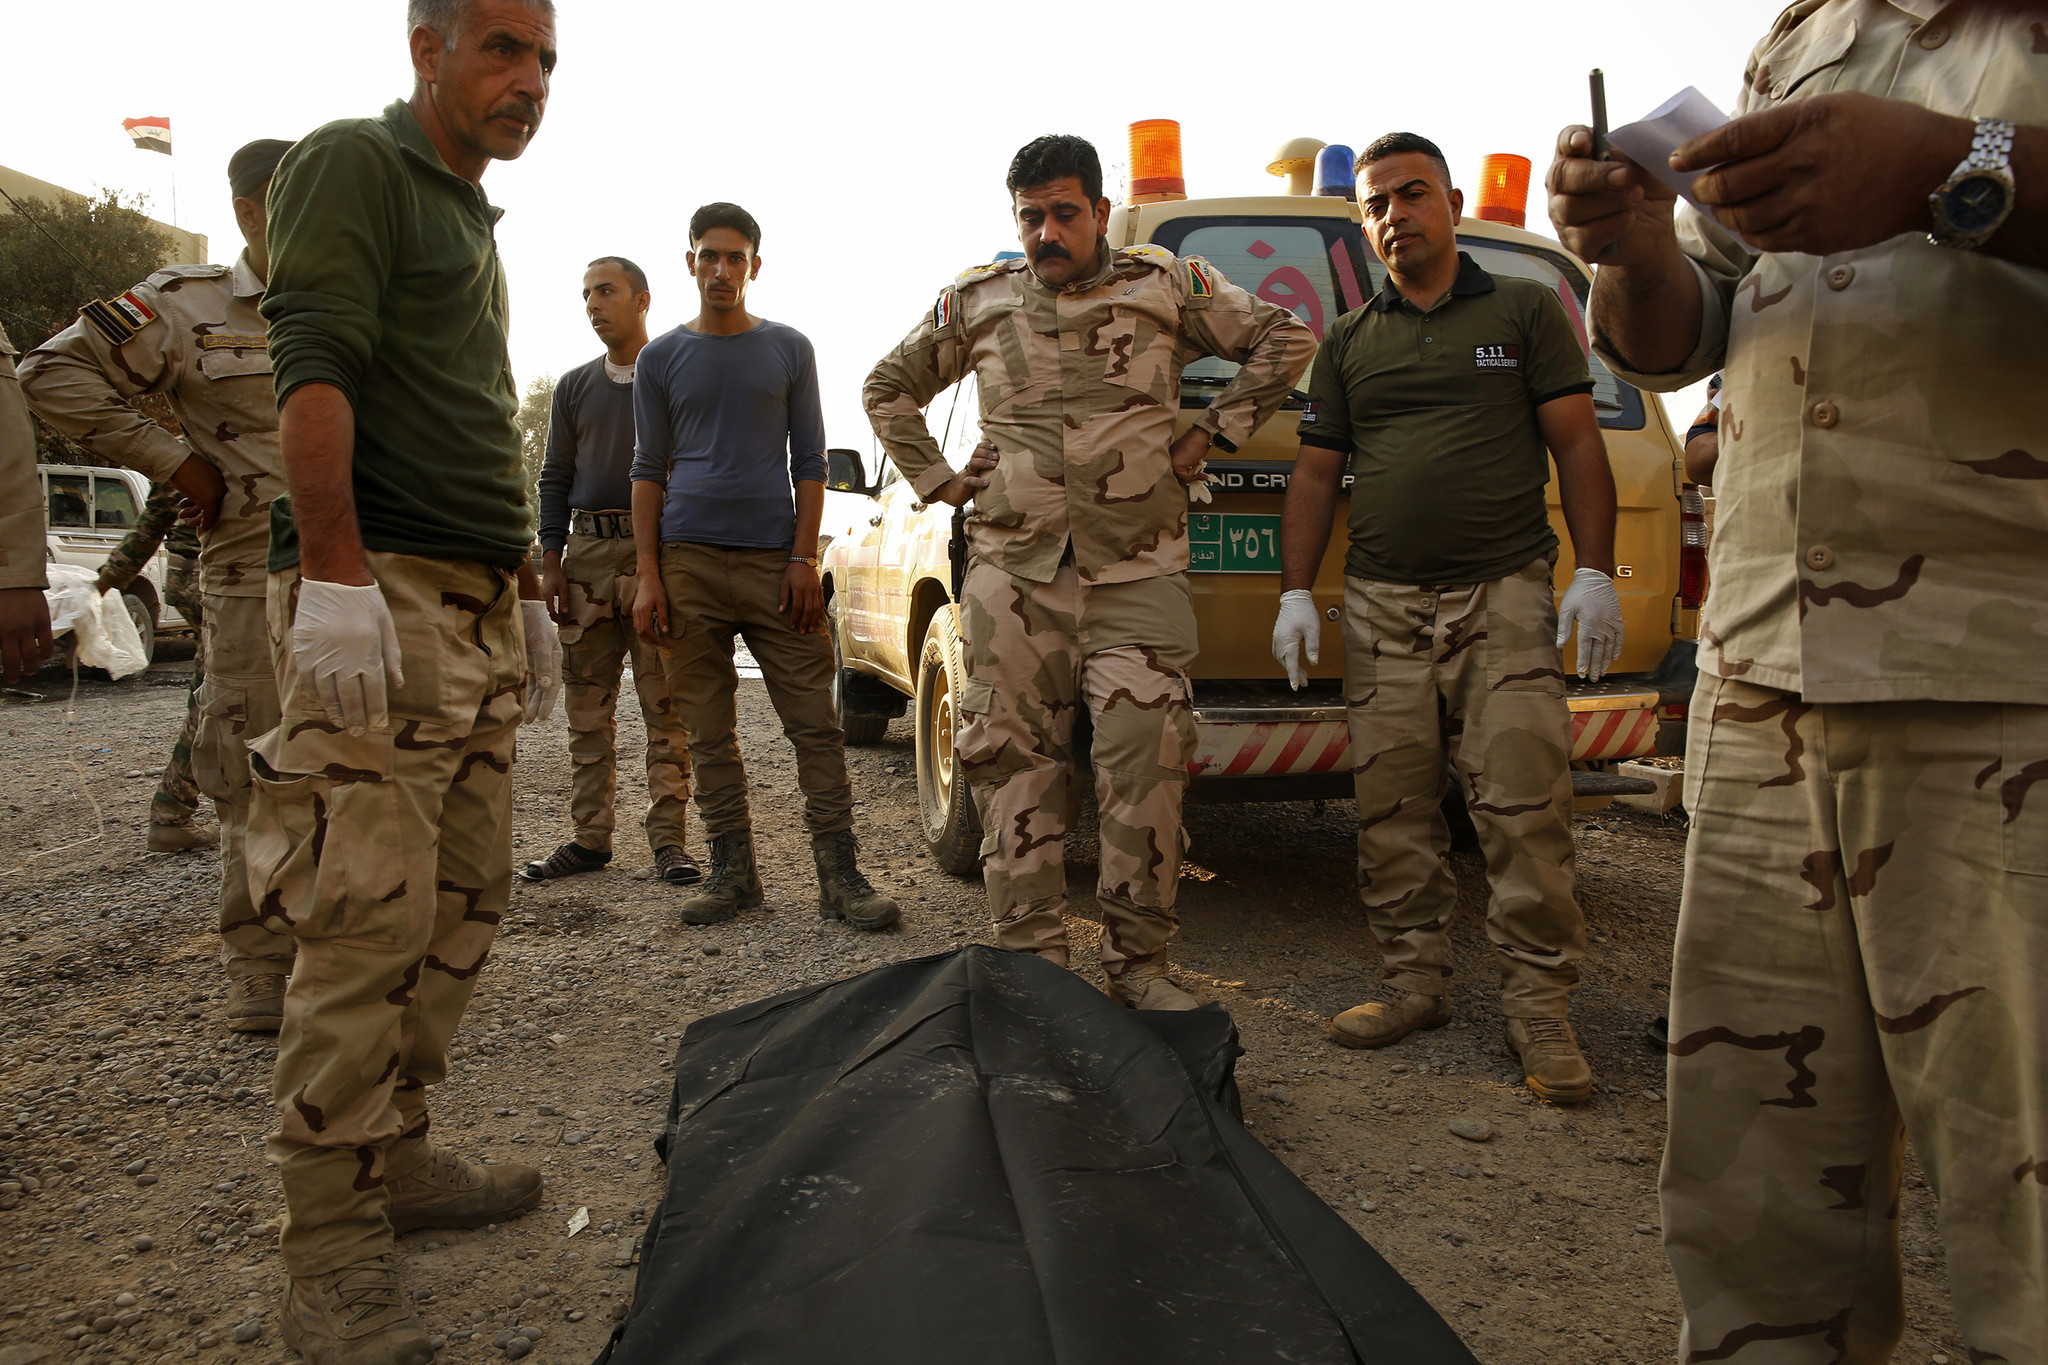 At the Iraqi Army's 9th Armored Division medical clinic, set up in a private home, doctors including Capt. Osama Fuad Rauf, center, gather around the body of a deceased soldier before he is taken to Irbil and on to Baghdad.